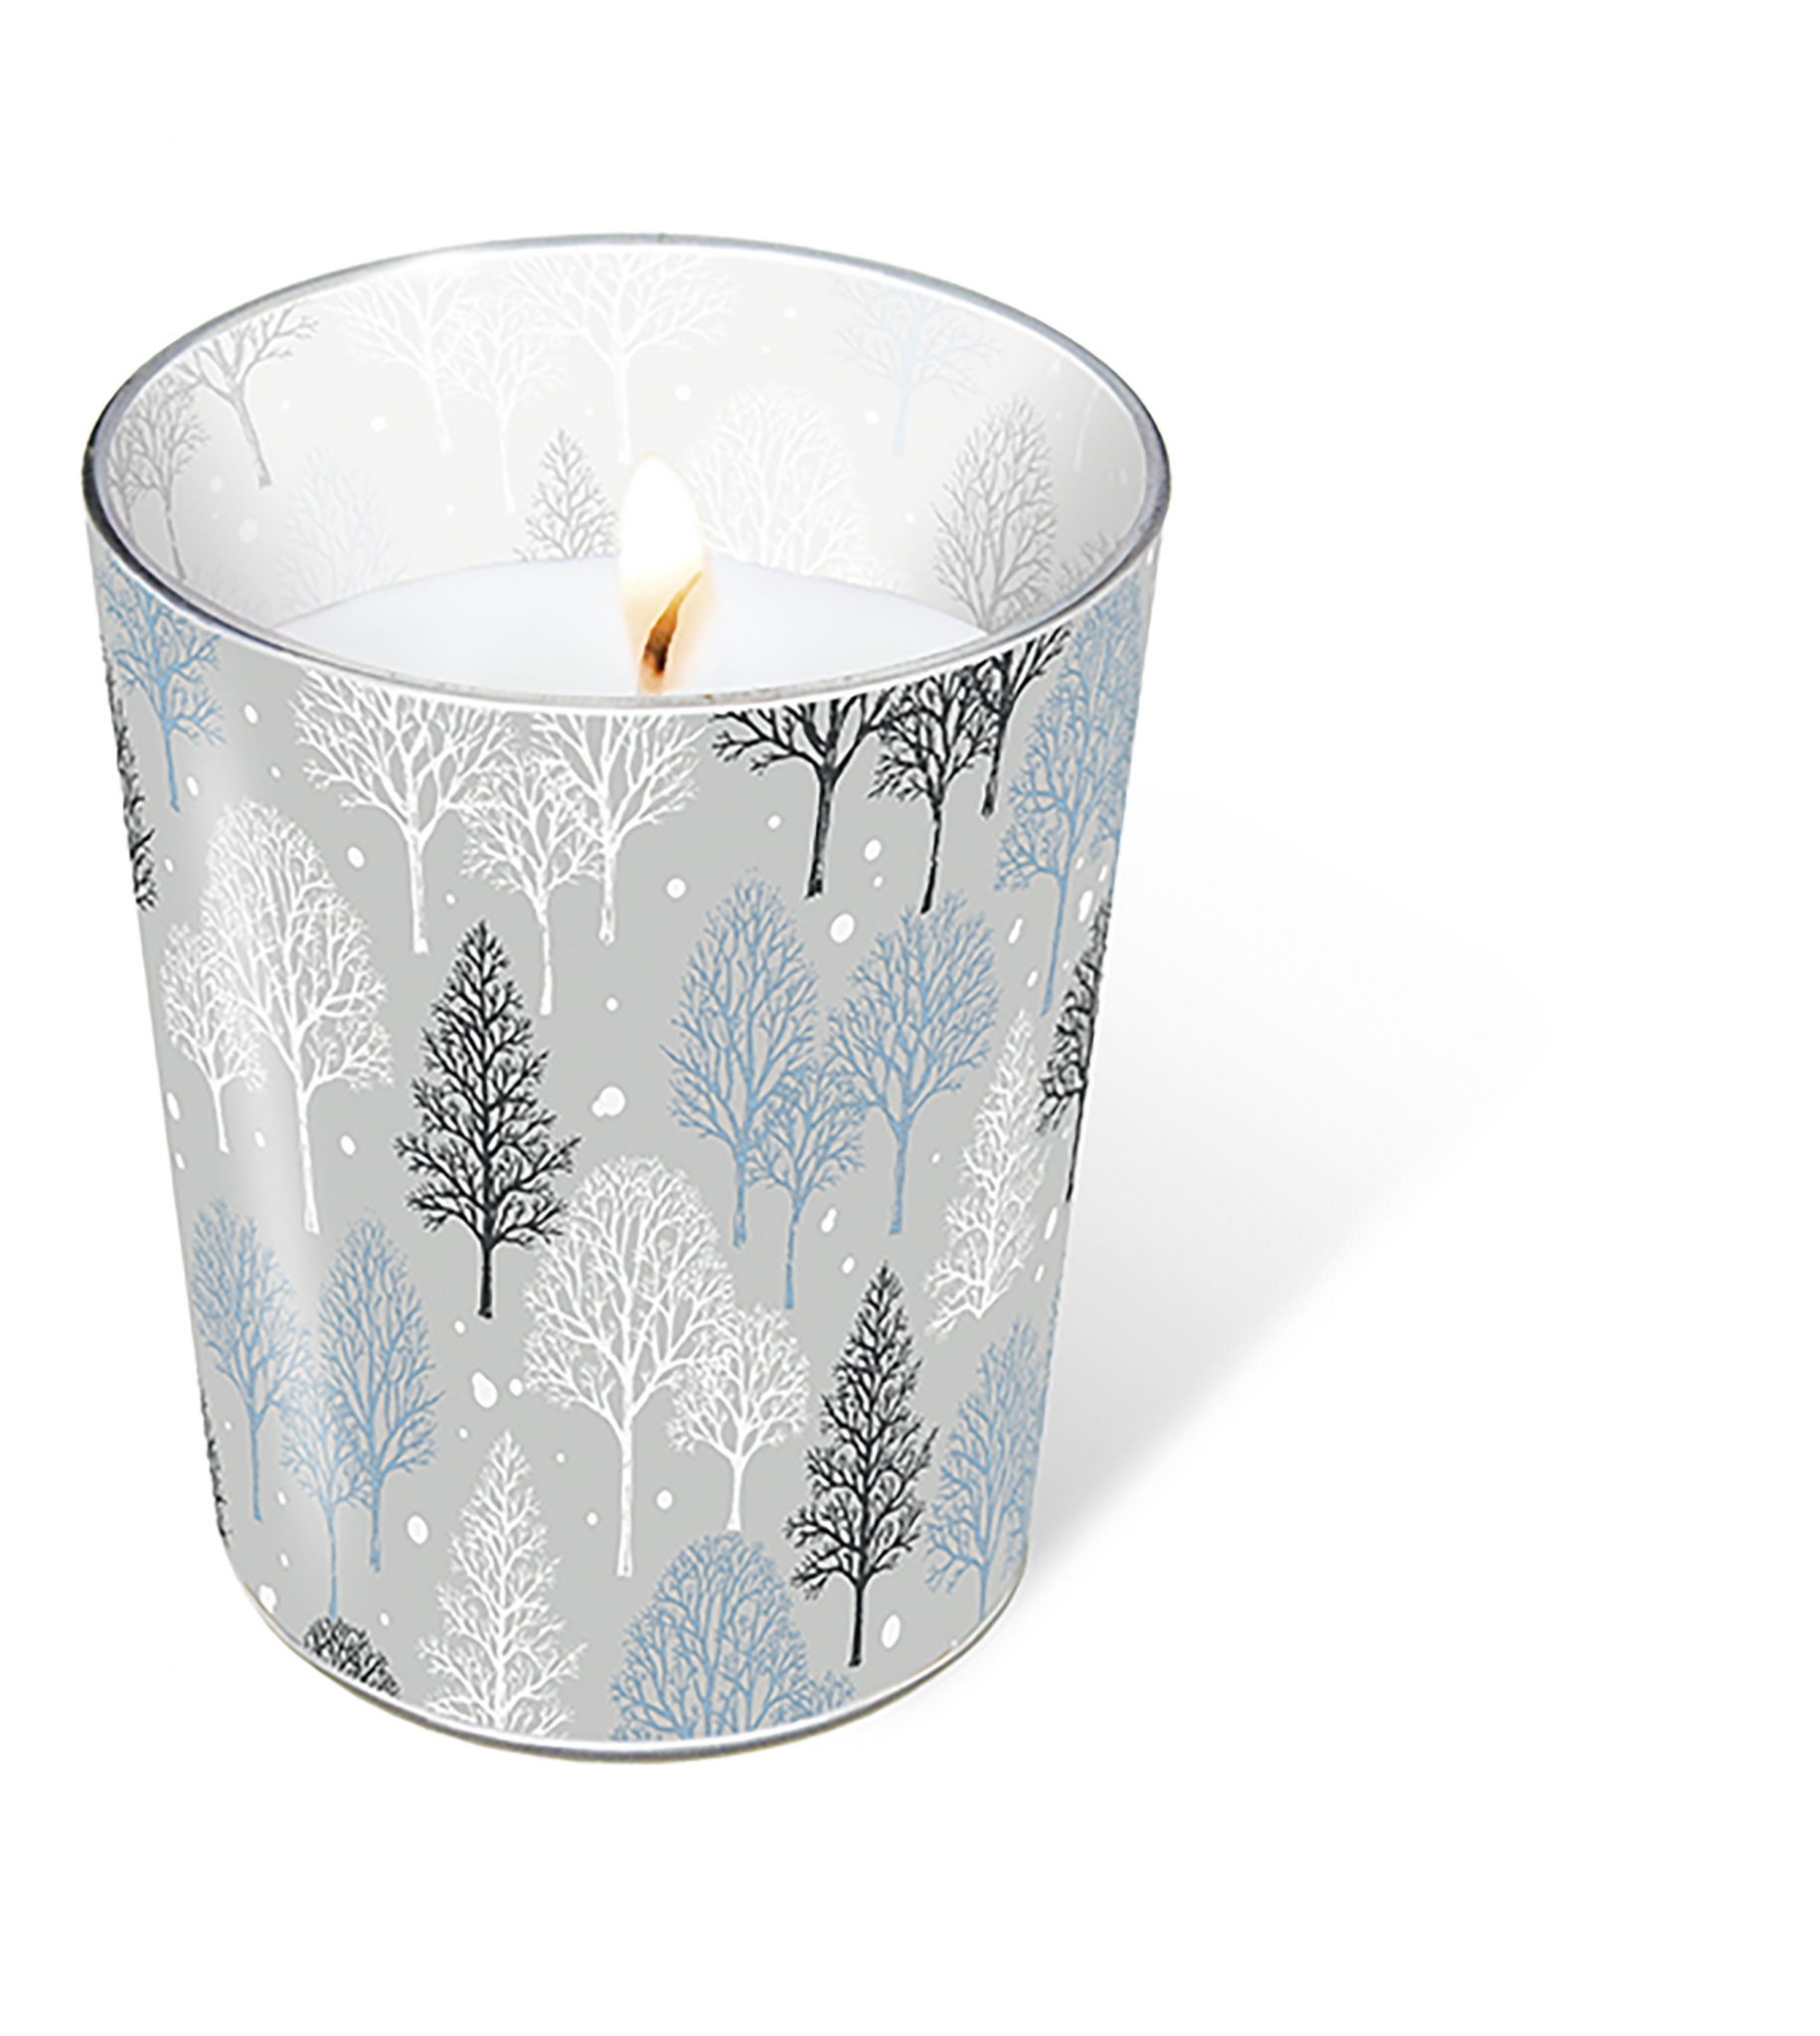 glass candle - Winter trees